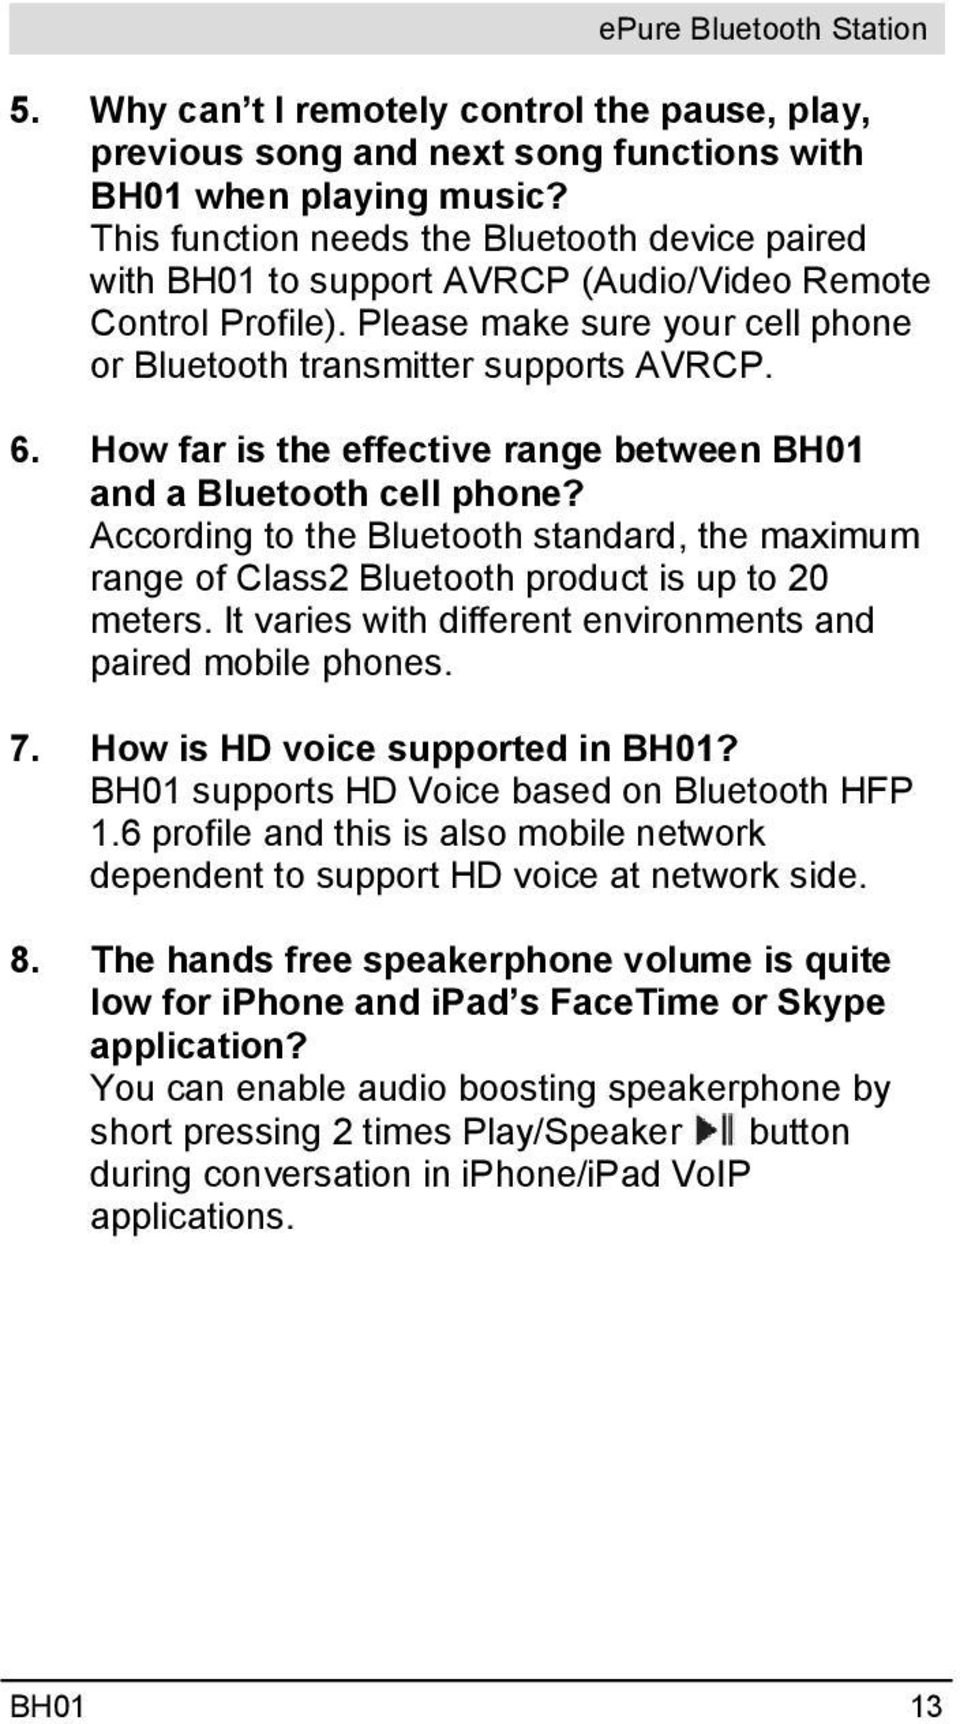 How far is the effective range between BH01 and a Bluetooth cell phone? According to the Bluetooth standard, the maximum range of Class2 Bluetooth product is up to 20 meters.